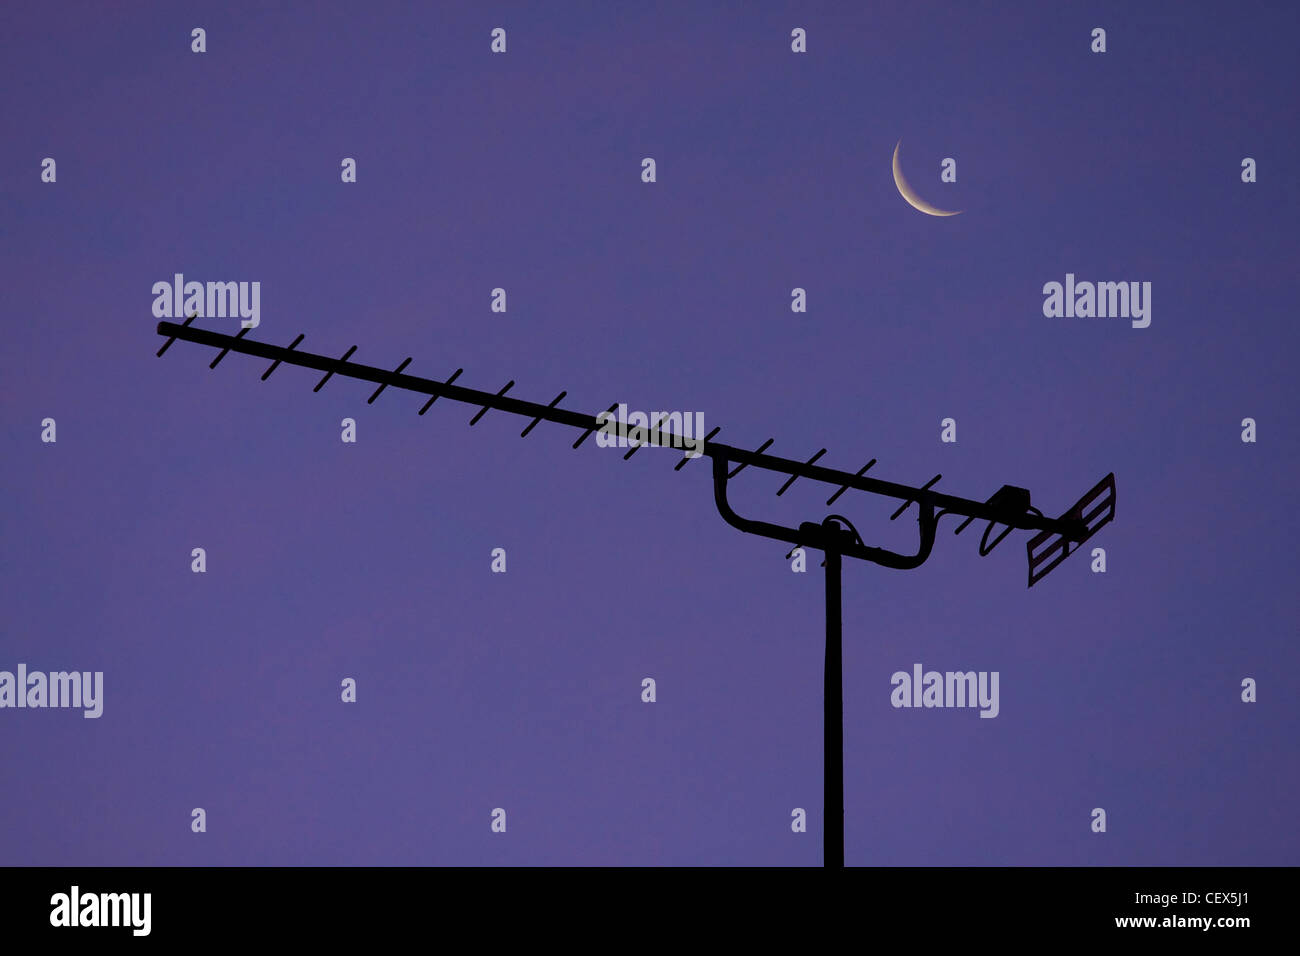 Detail of a TV aerial and a crescent moon. - Stock Image